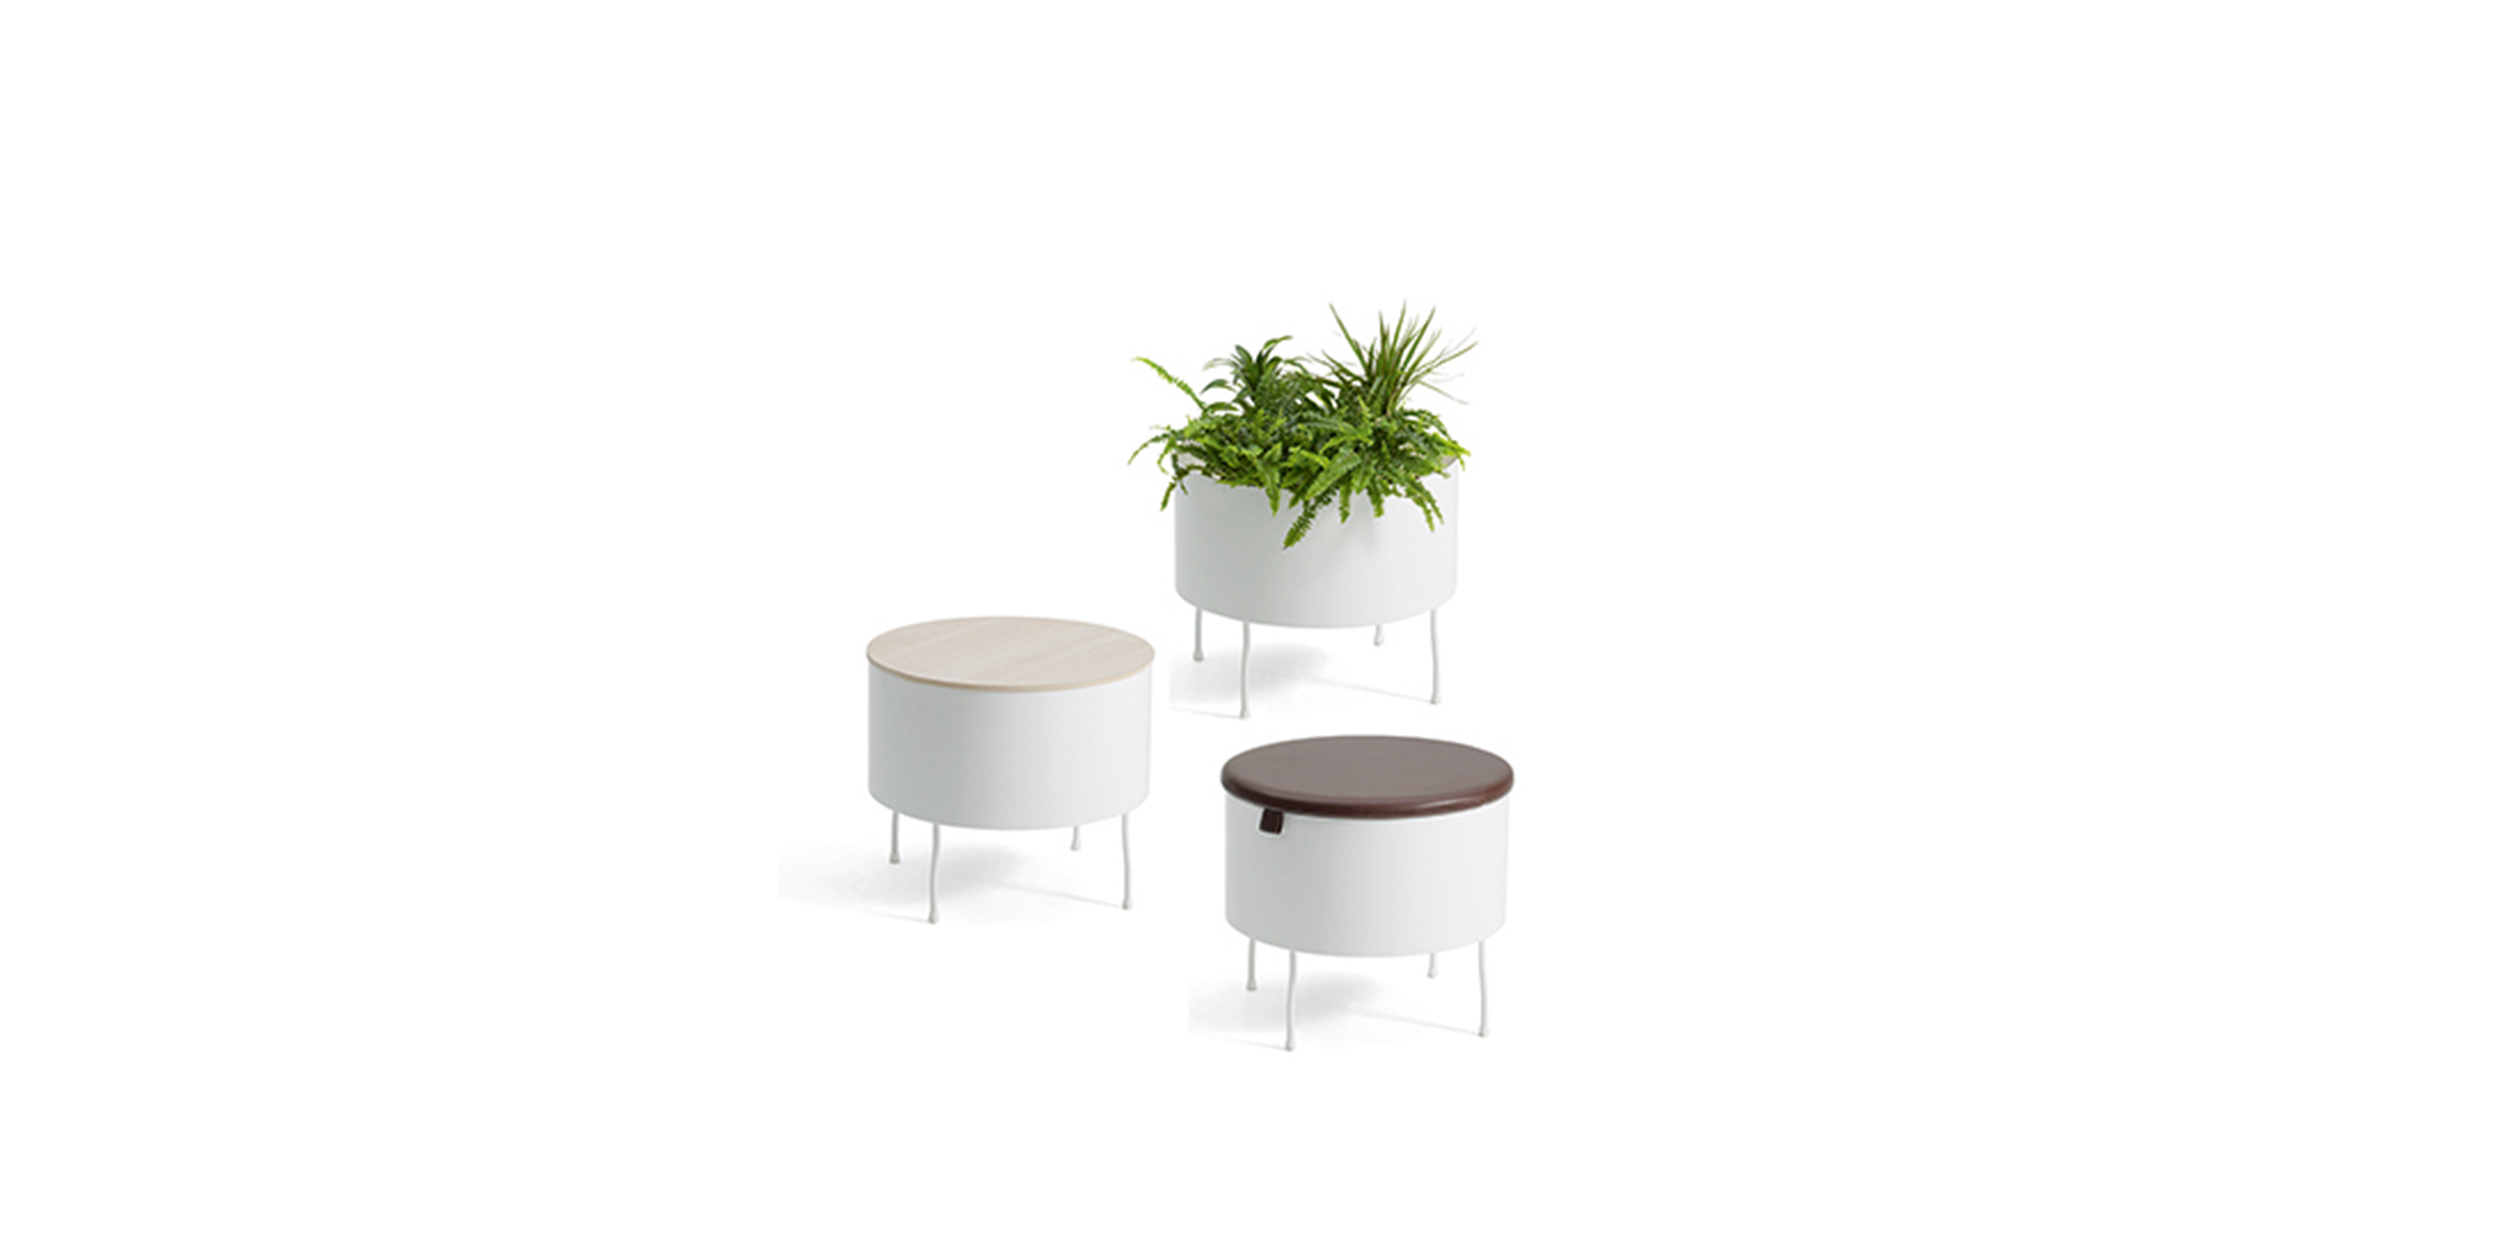 Green Pedestals by Front